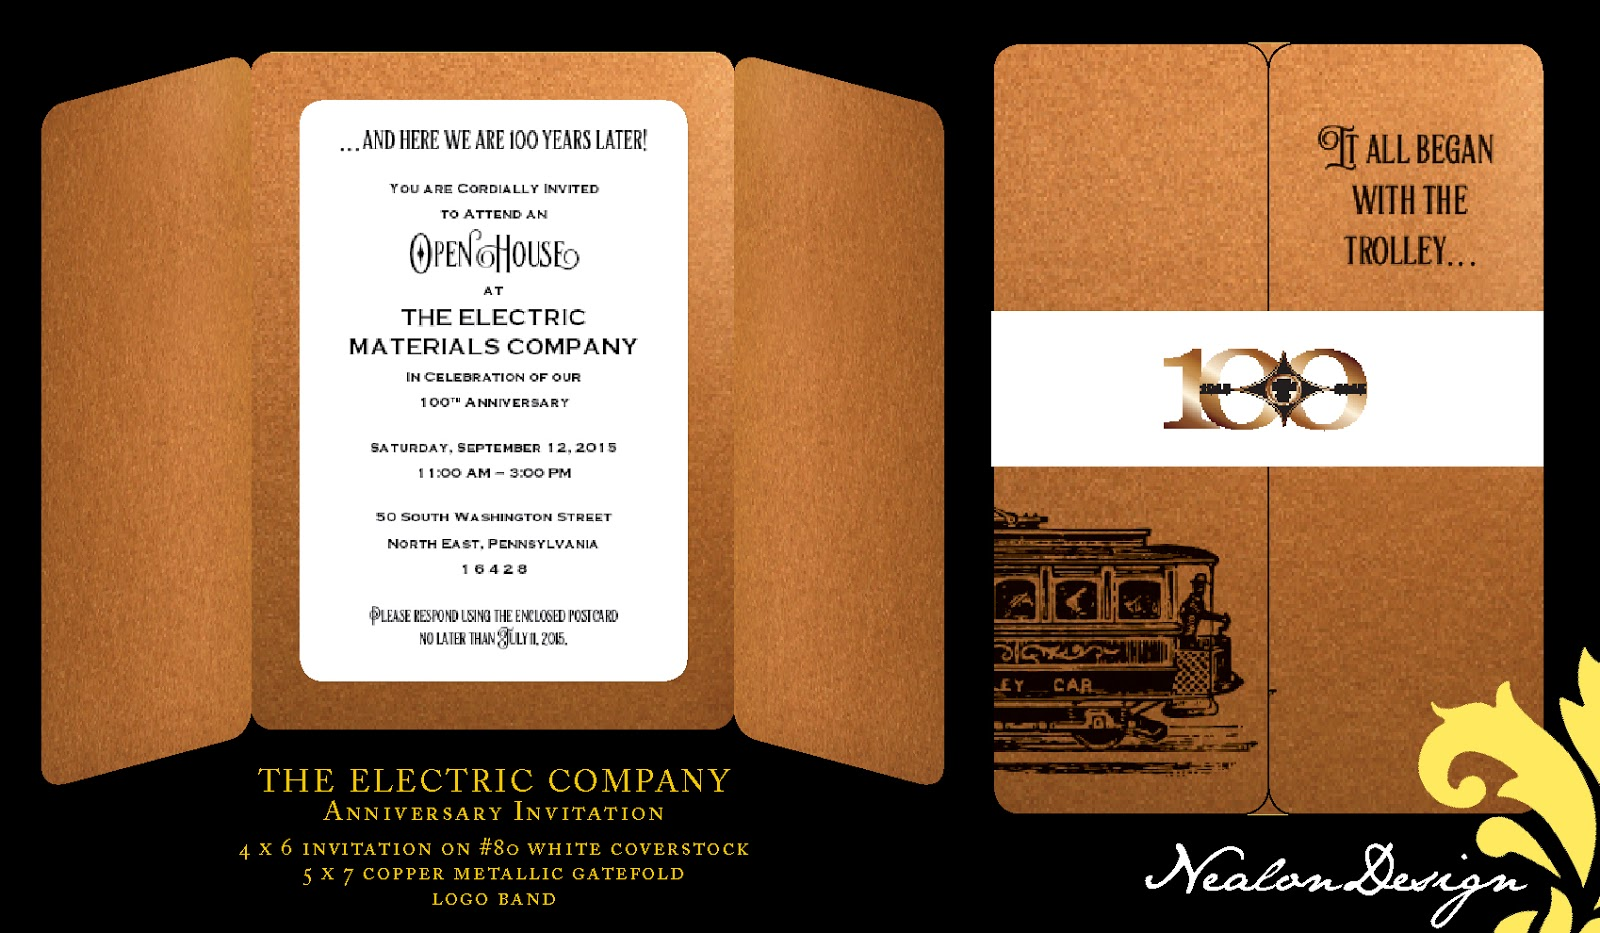 Nealon design electric materials company 100th anniversary i was asked to design an anniversary invitation for the electric materials company celebrating an impressive 100 years the client liked my family tree stopboris Choice Image